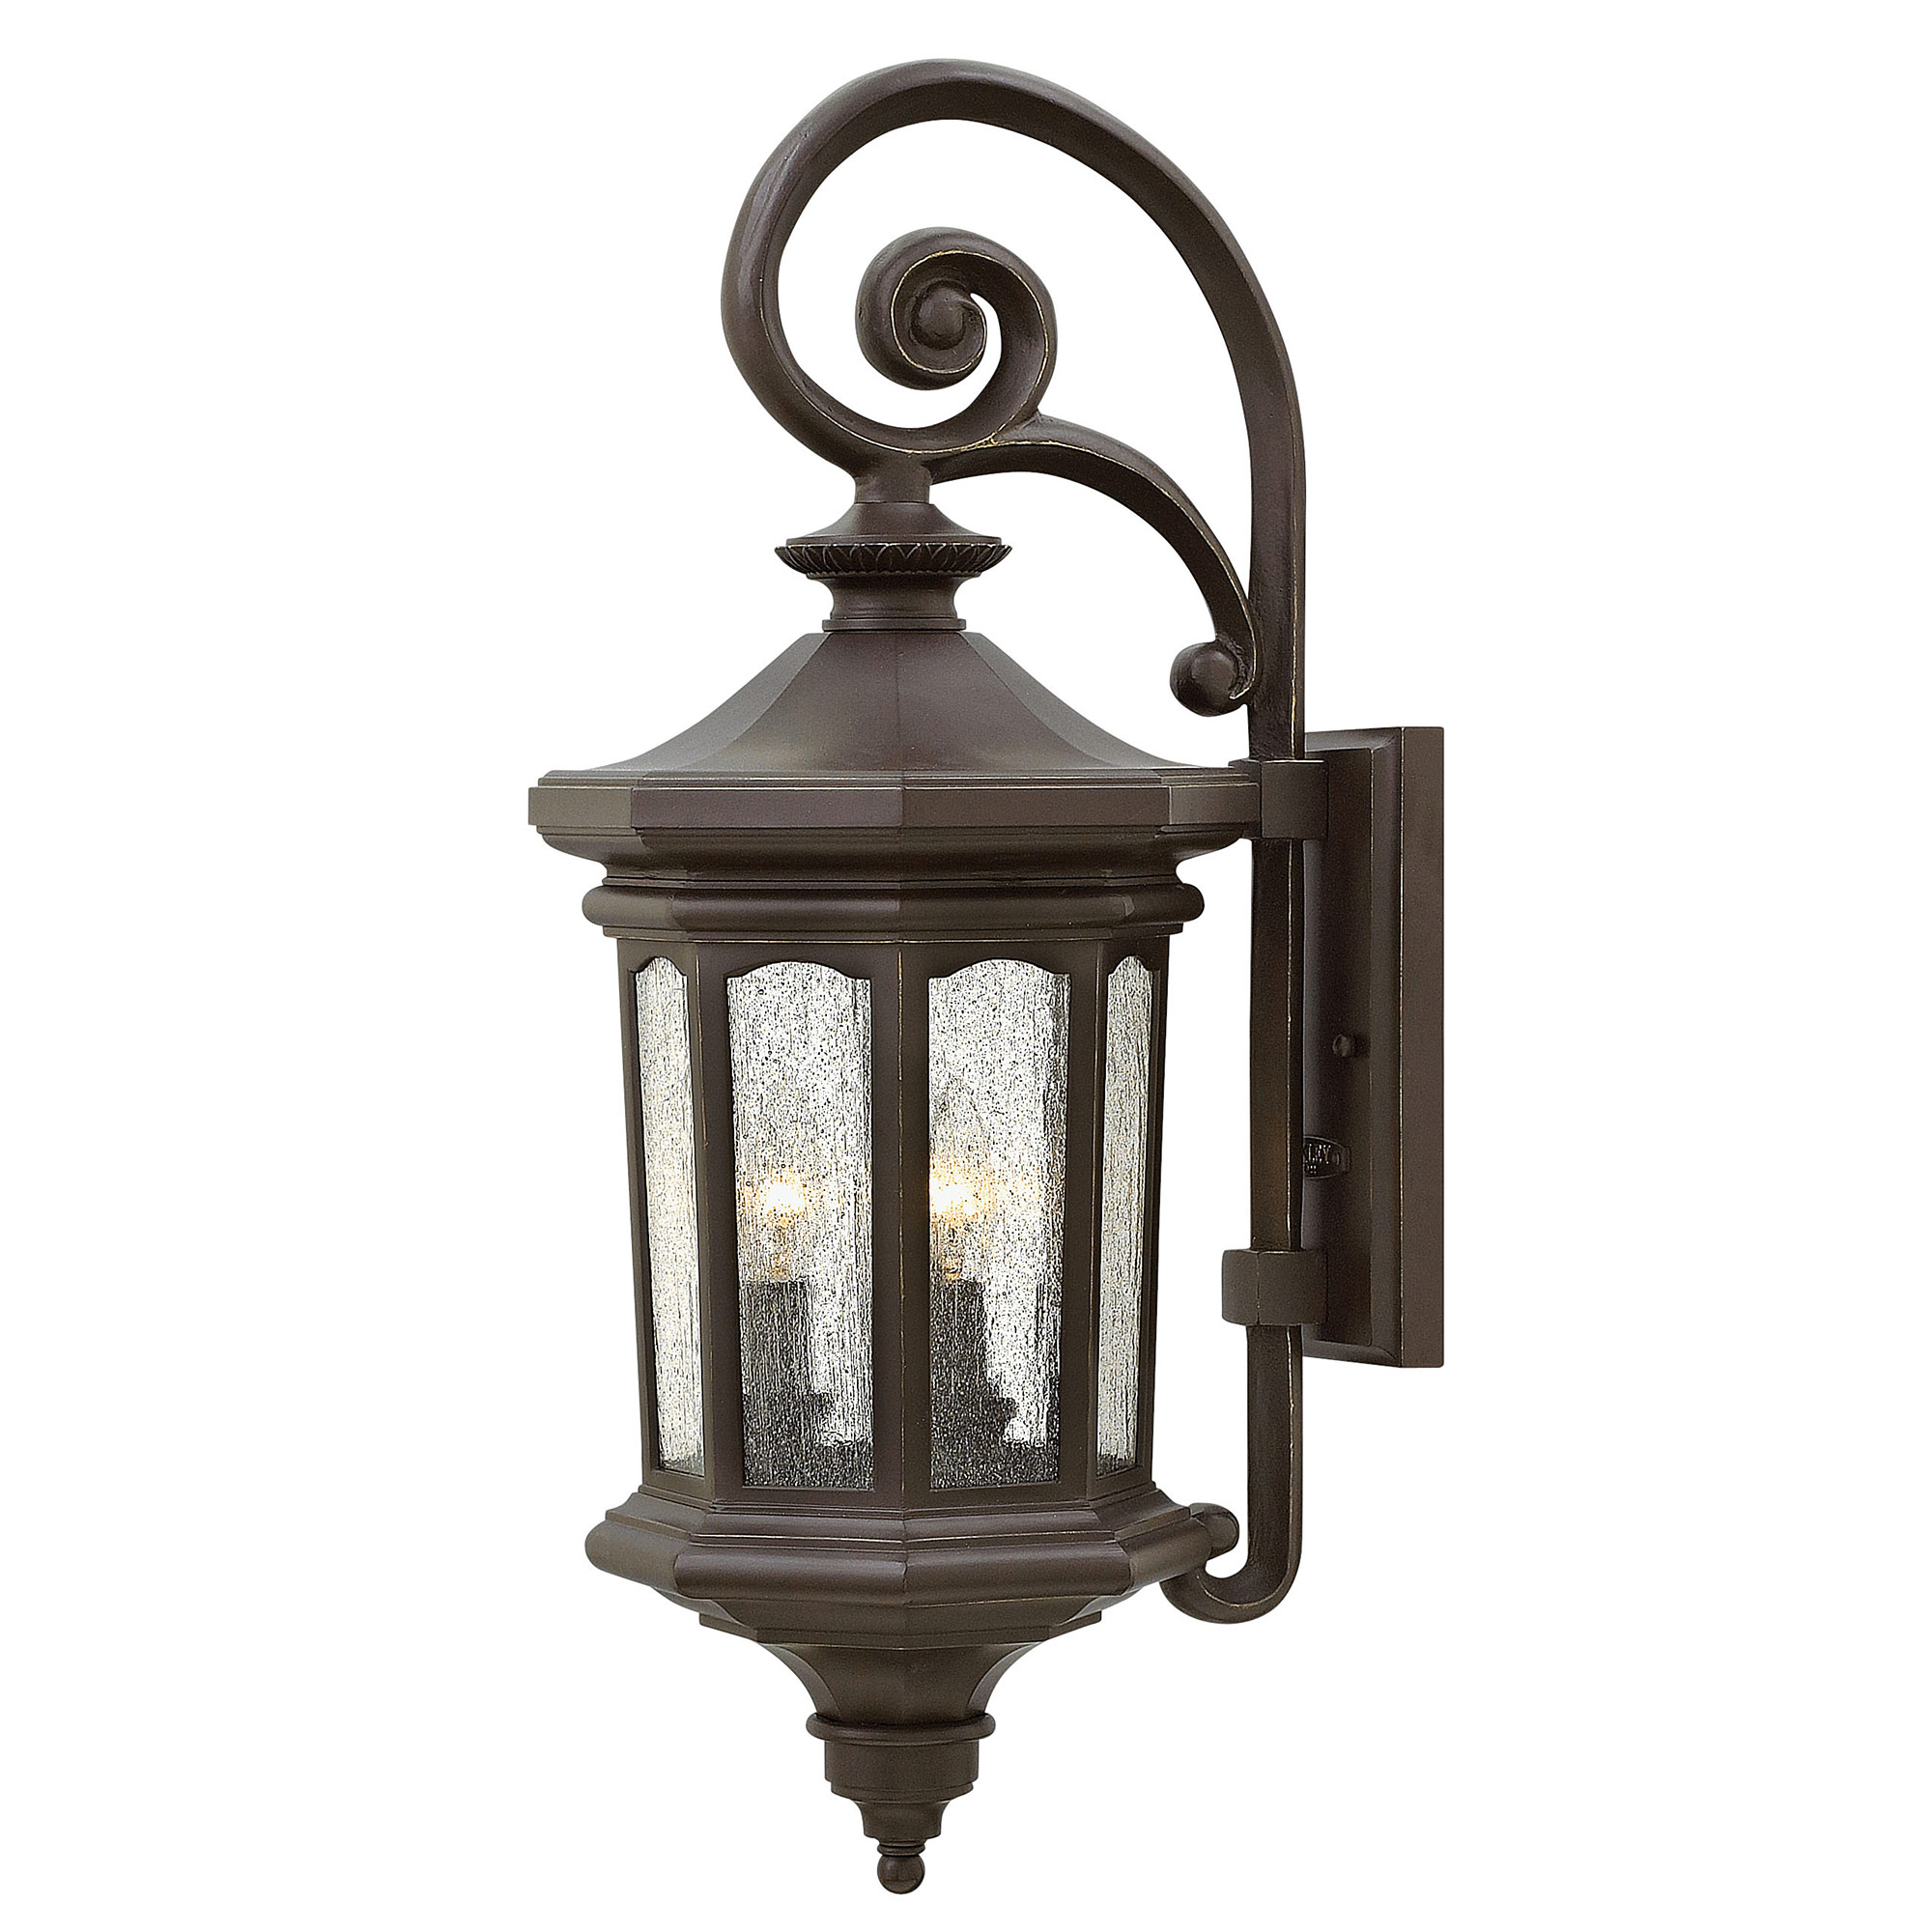 Hinkley Outdoor Wall Light: Raley Outdoor Wall Sconce By Hinkley Lighting